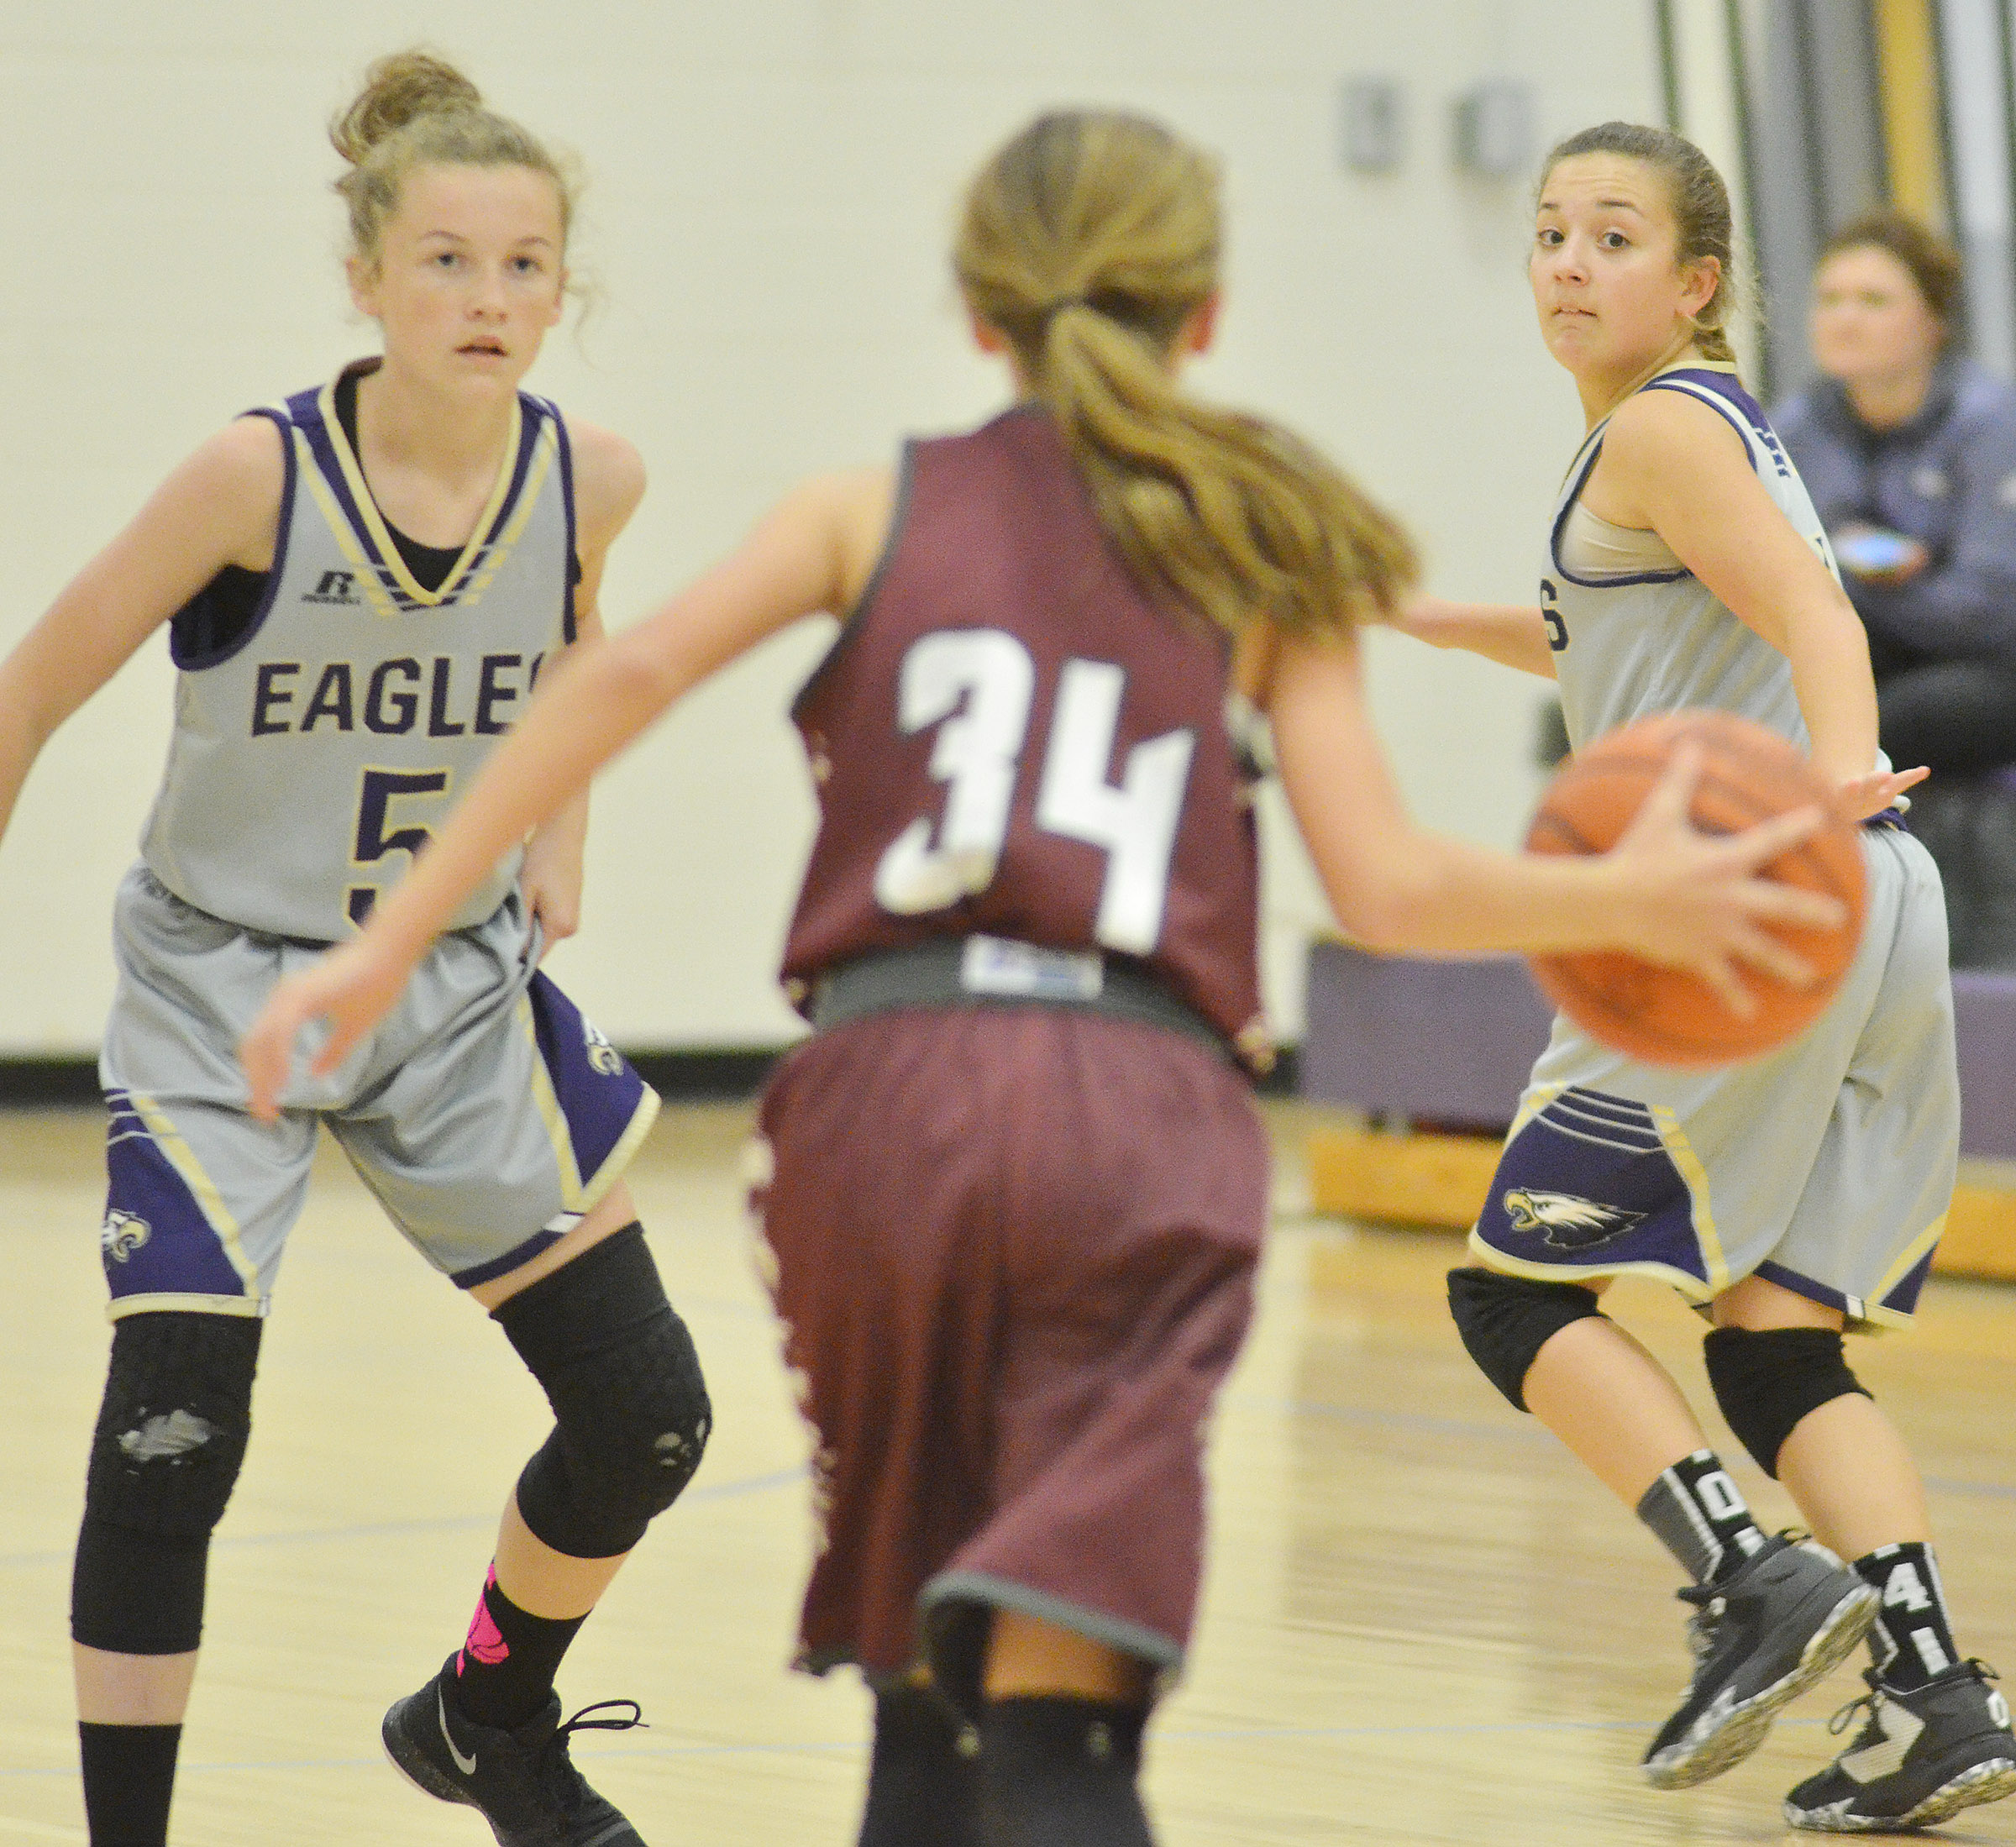 CMS seventh-graders Dakota Slone, at left, and Briana Davis play defense.